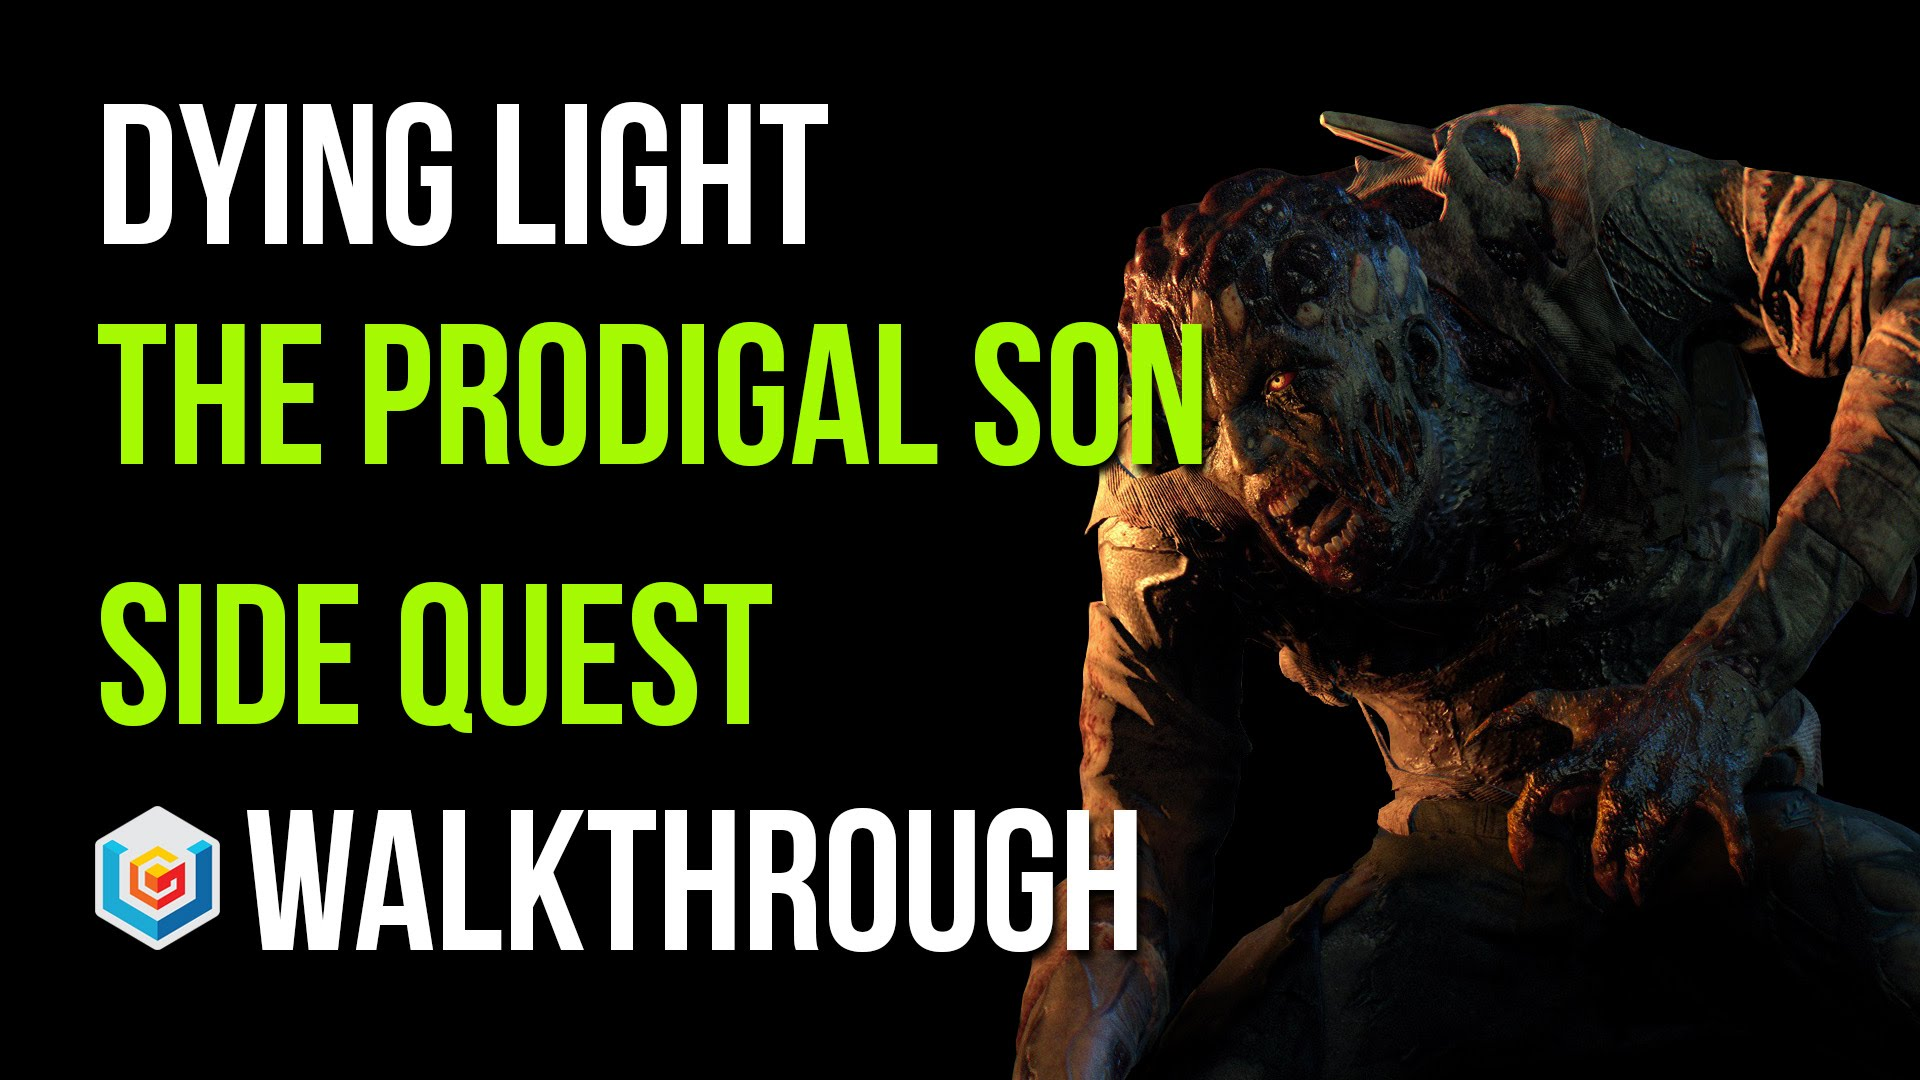 Dying light the prodigal son walkthrough vgfaq malvernweather